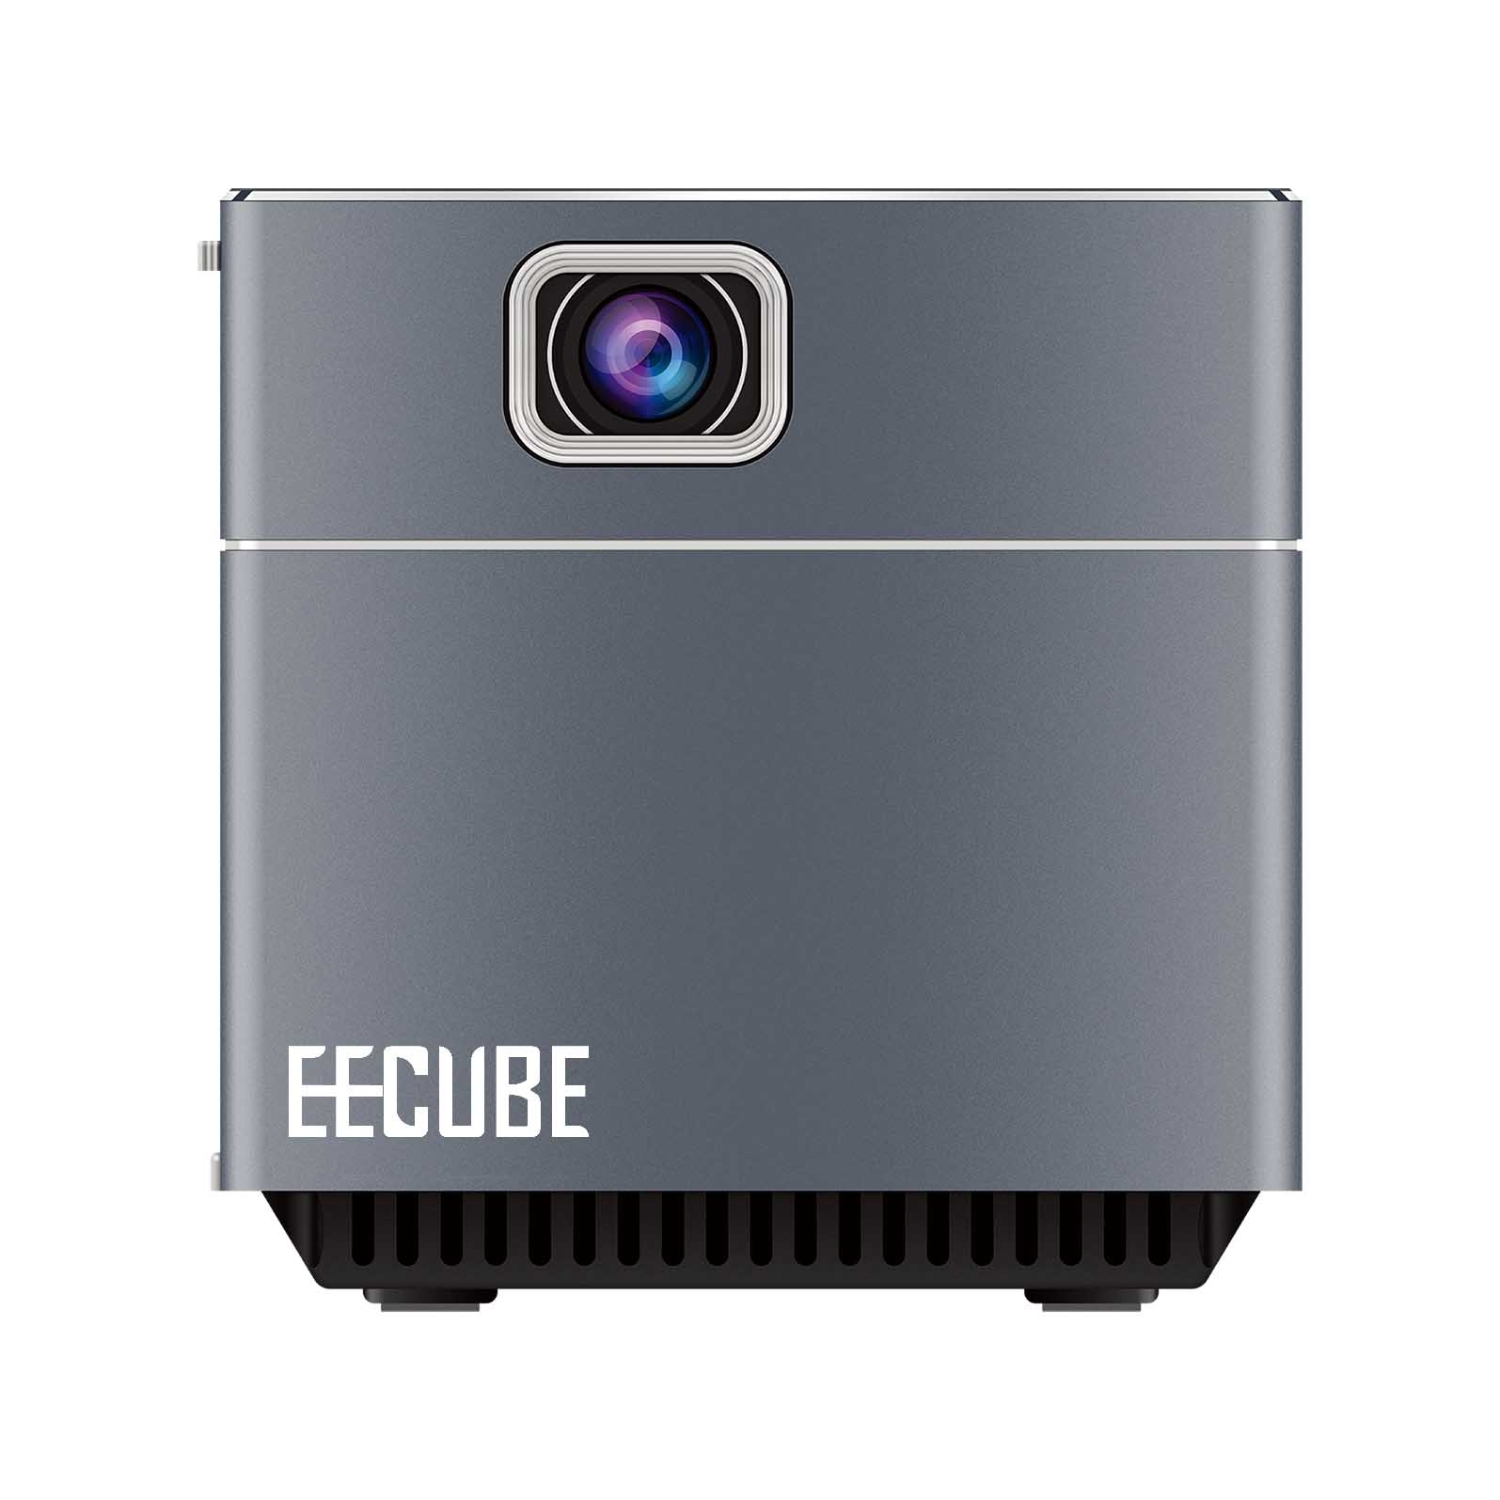 EEGroup EECube Piczo 1WA Android Wireless Compact Portable Projector